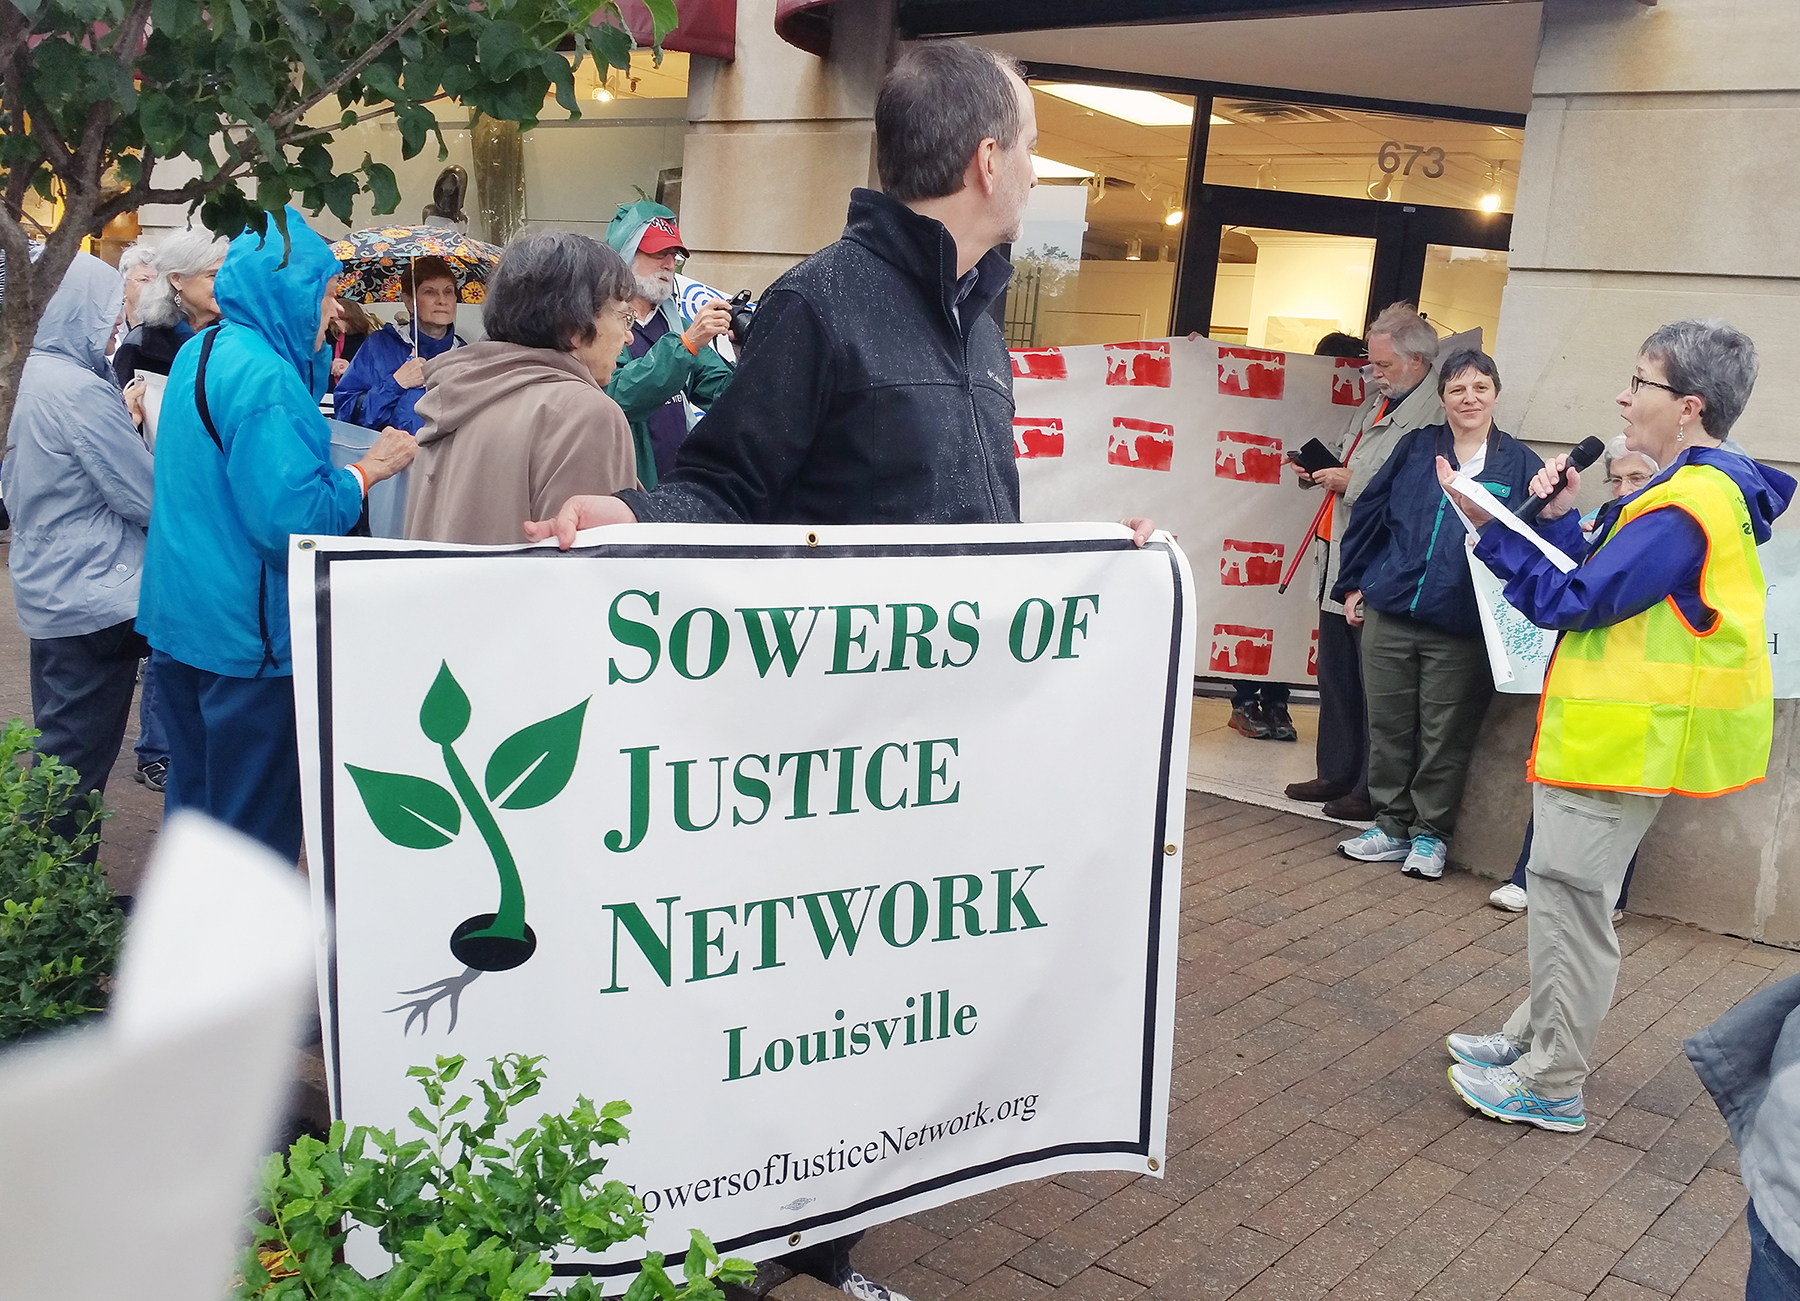 At right, Pat Geier speaks to participants in a prayerful march for solutions to gun violence. The march was led by the Sowers of Justice Network May 21 in Louisville. (Photo courtesy of Pat Geier)